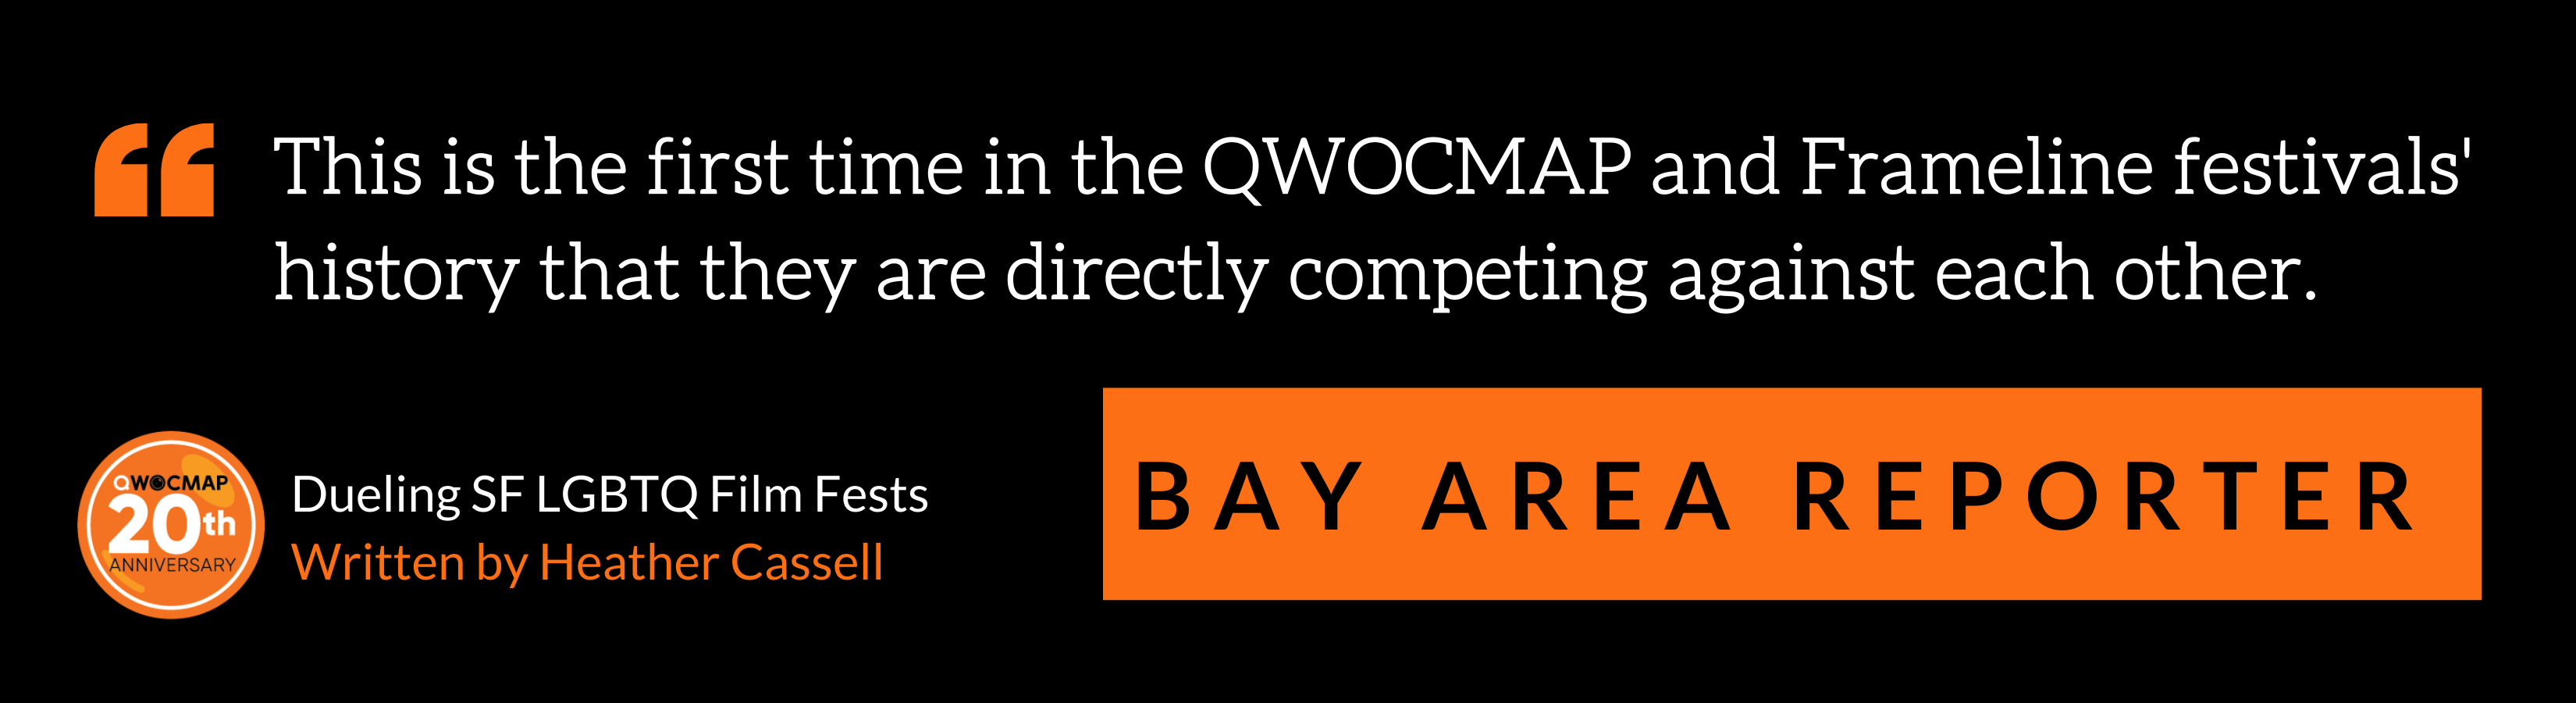 """On a black background, white text in orange quotation marks reads, """"This is the first time in the QWOCMAP and Frameline festivals' history that they are directly competing against each other."""" Below, black text in an orange box reads Bay Area Reporter. In the bottom left corner is the QWOCMAP 20th anniversary logo, and white and orange text that reads Dueling SF LGBTQ Film Fests, written by Heather Cassell."""